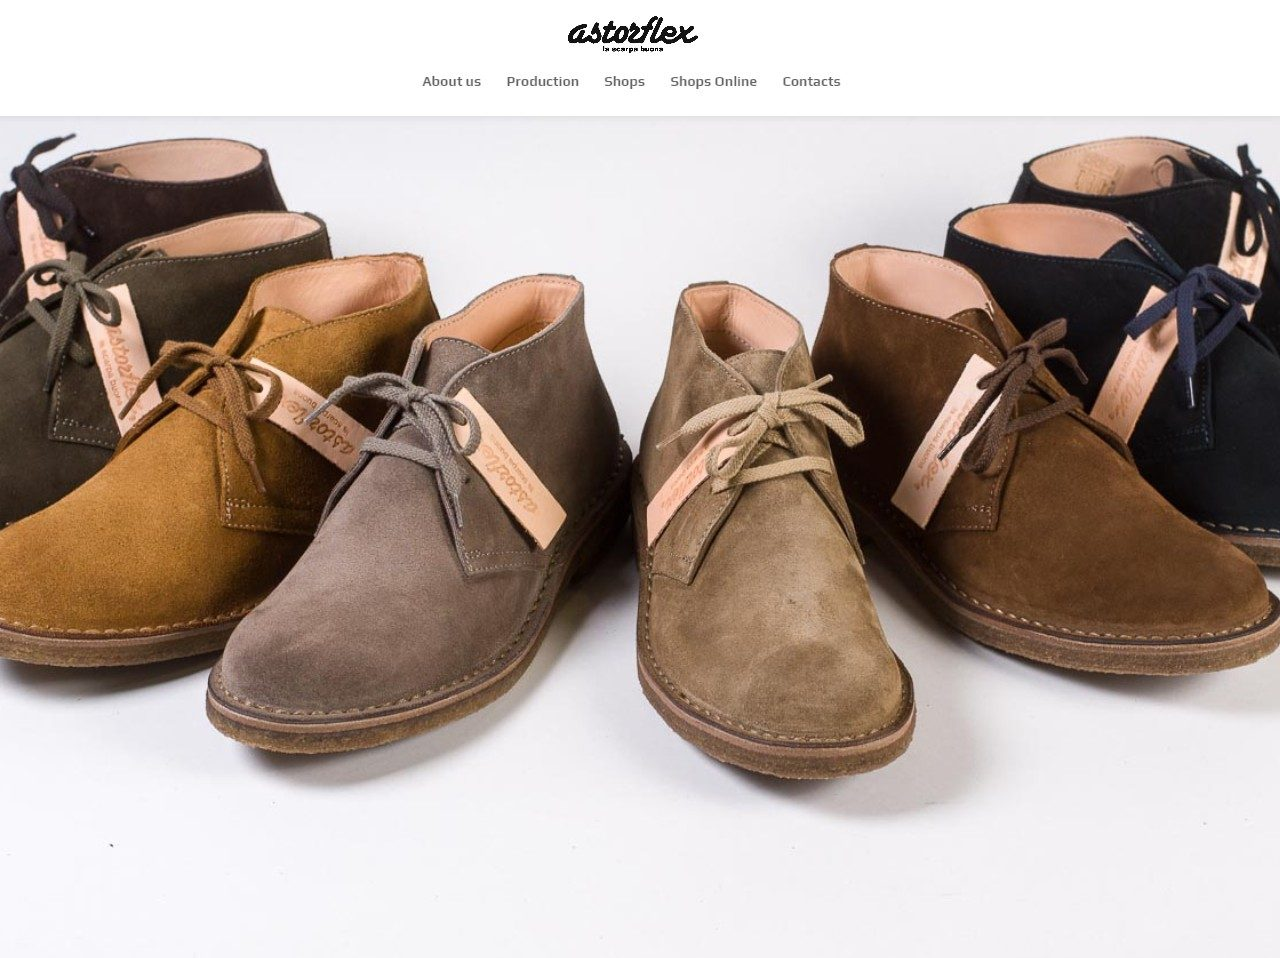 Astorflex The best desert boots in the world.